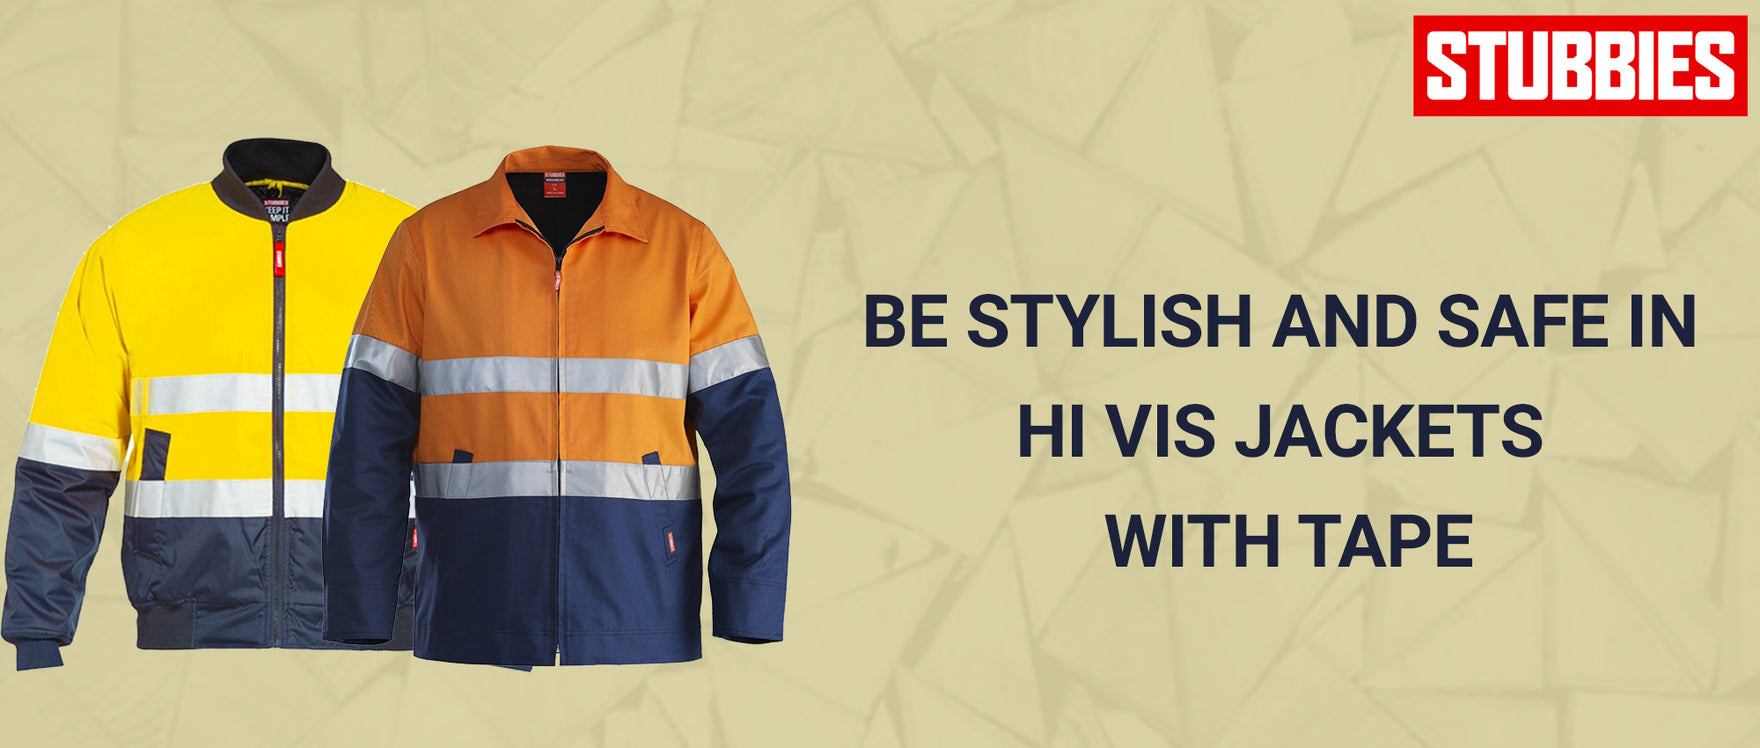 Be Stylish and Safe in Hi Vis Jackets with Tape